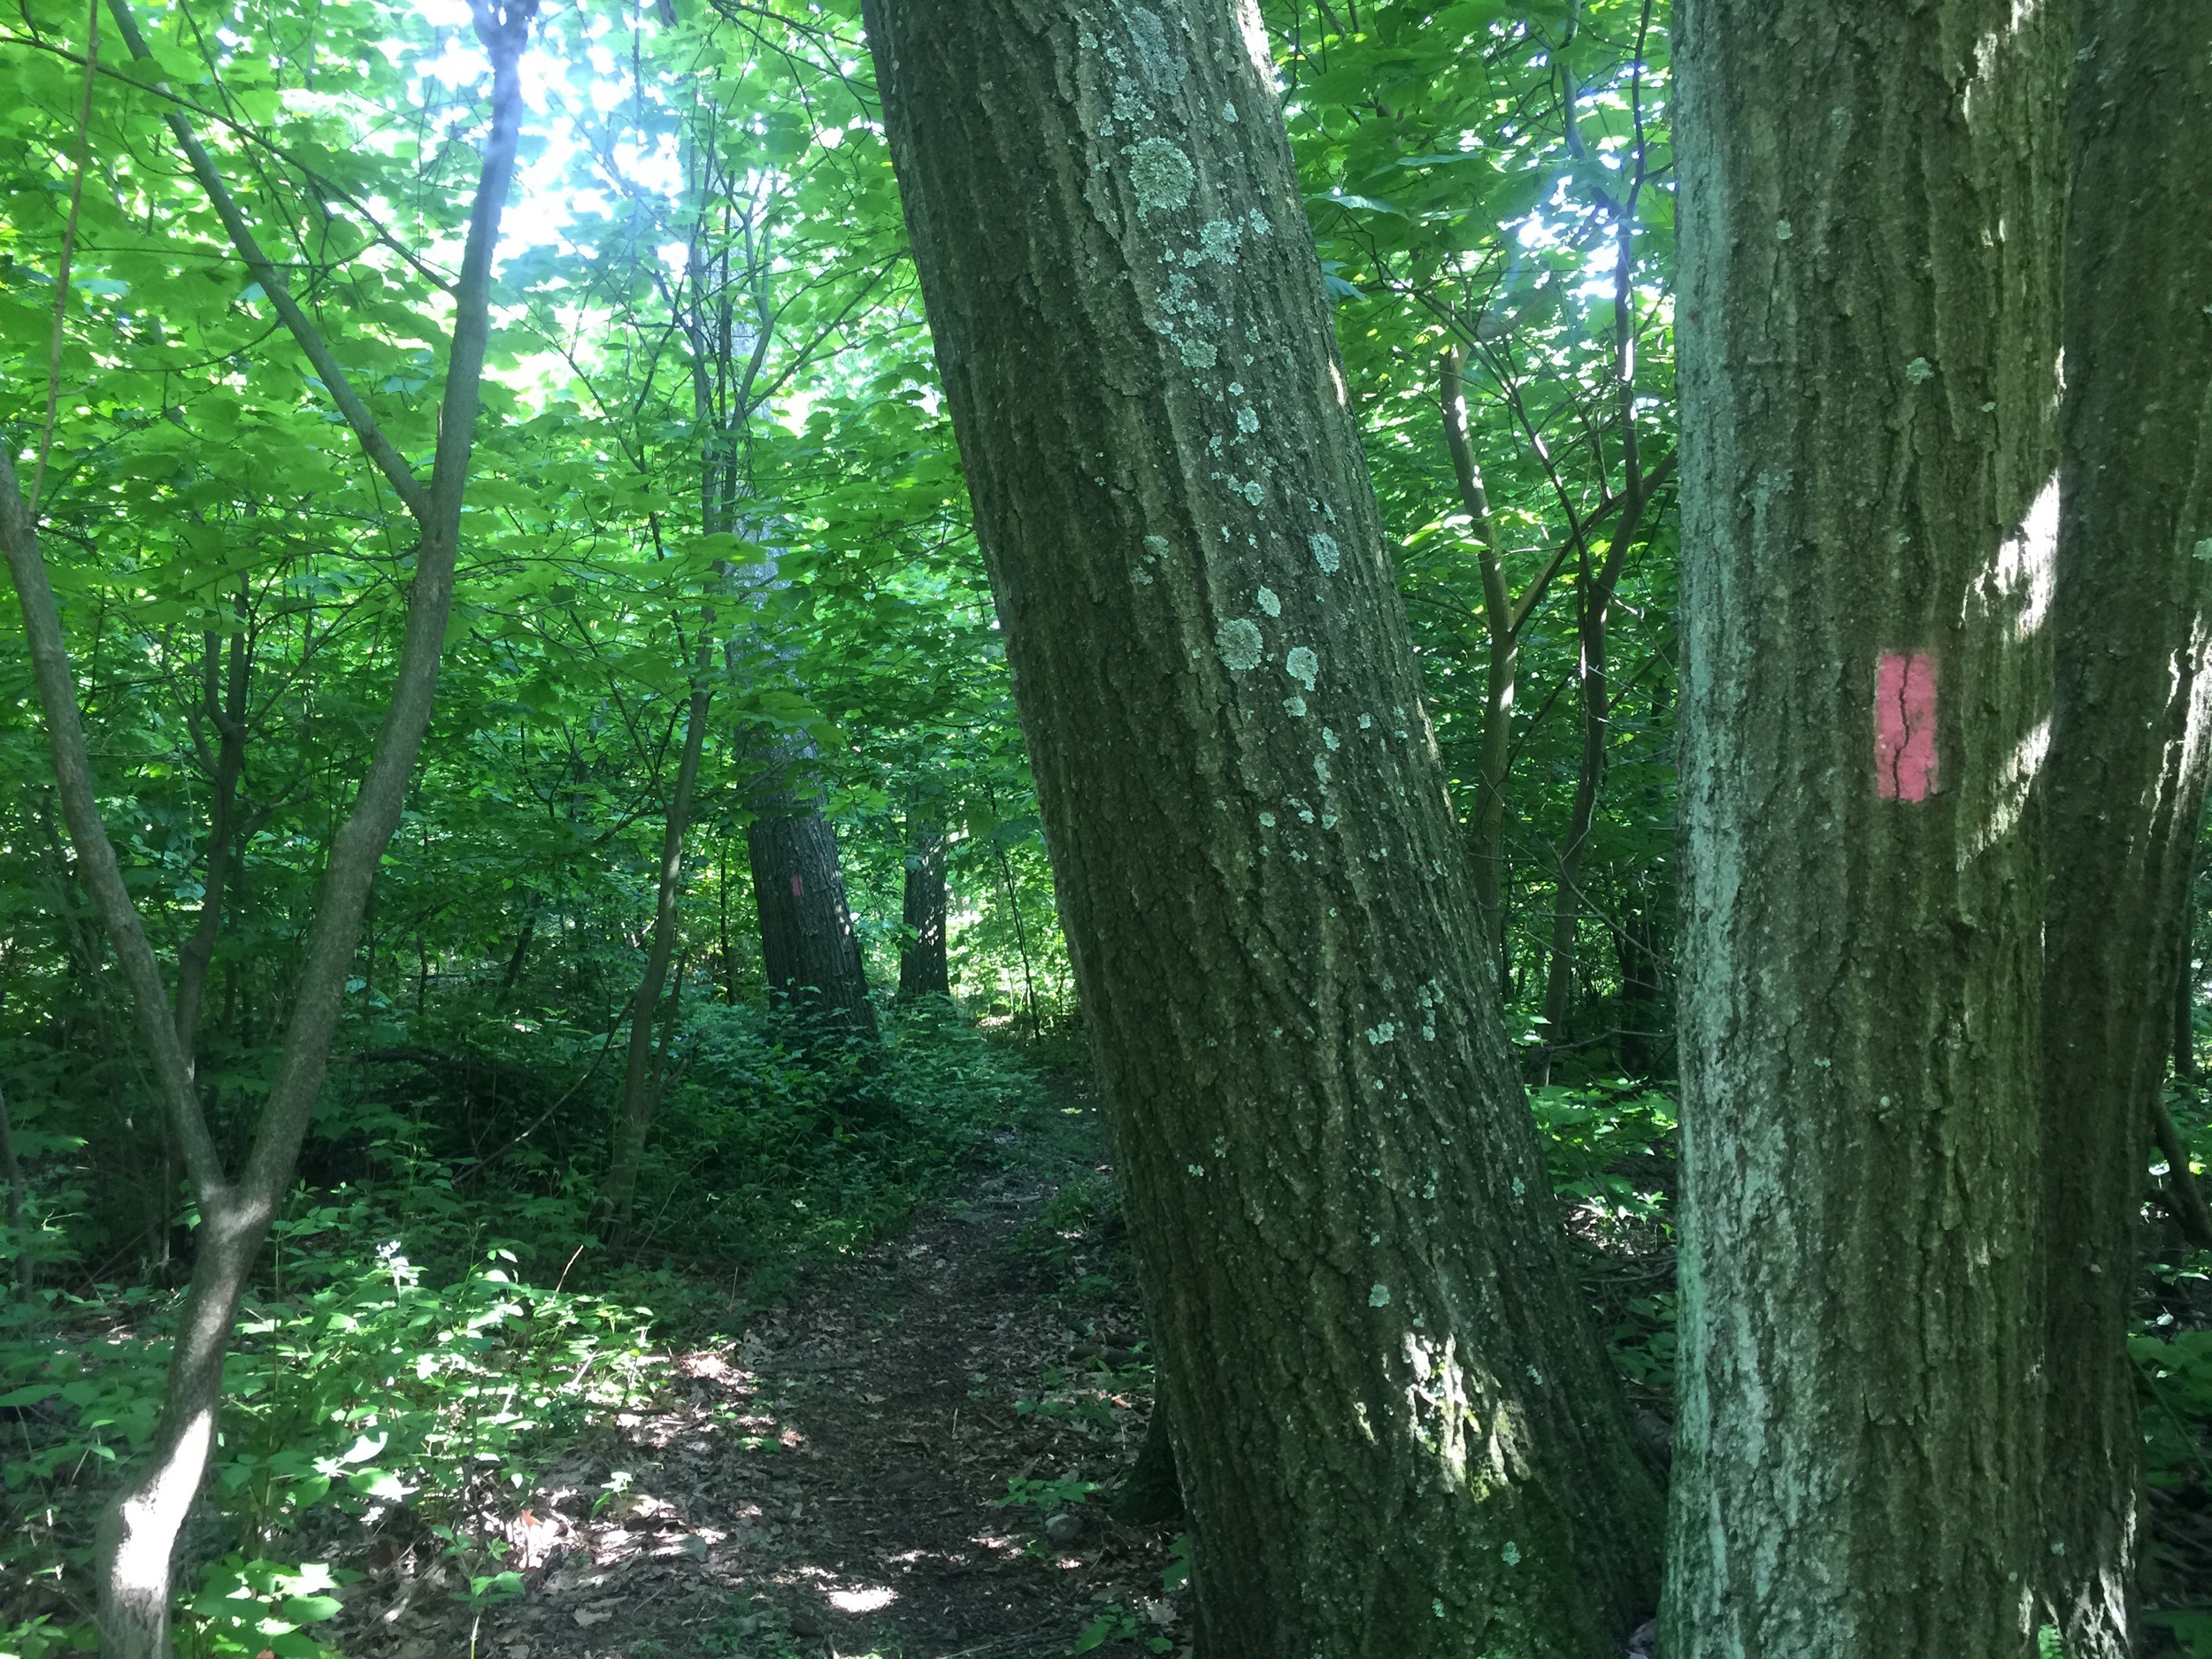 The infamous pink blaze - I did not dare follow and see what was down this trail...